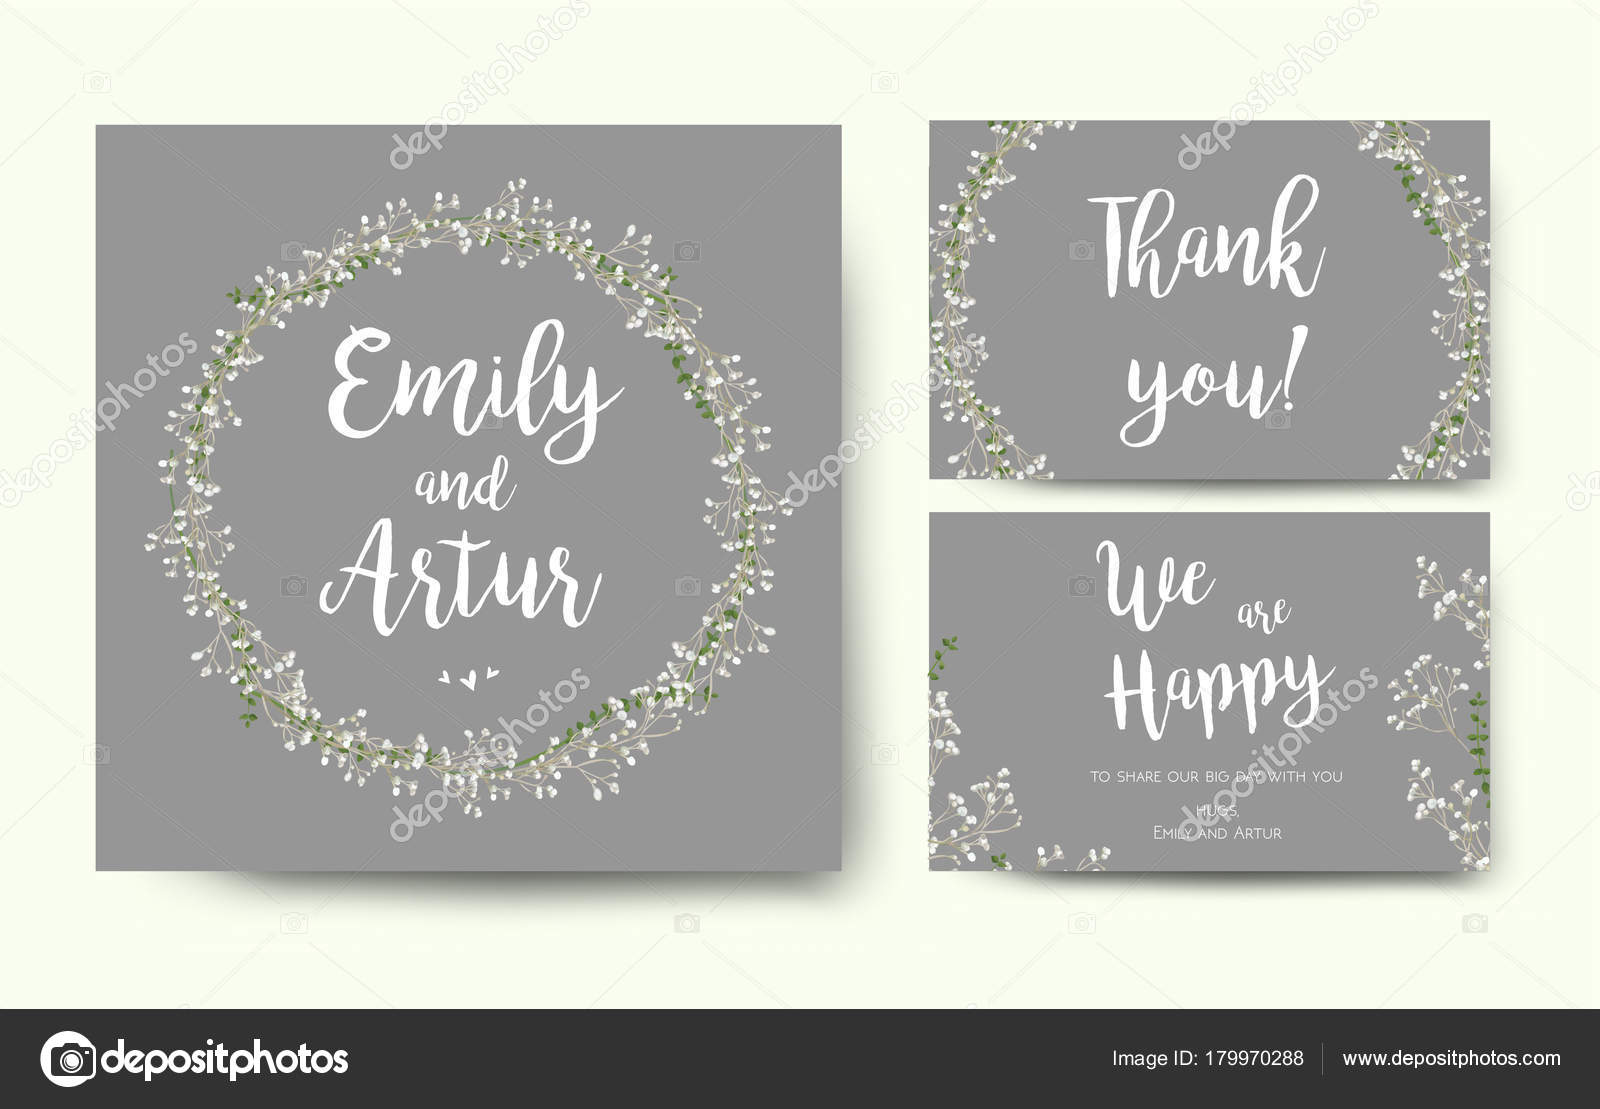 Wedding floral invitation invite flower card silver gray design with ...